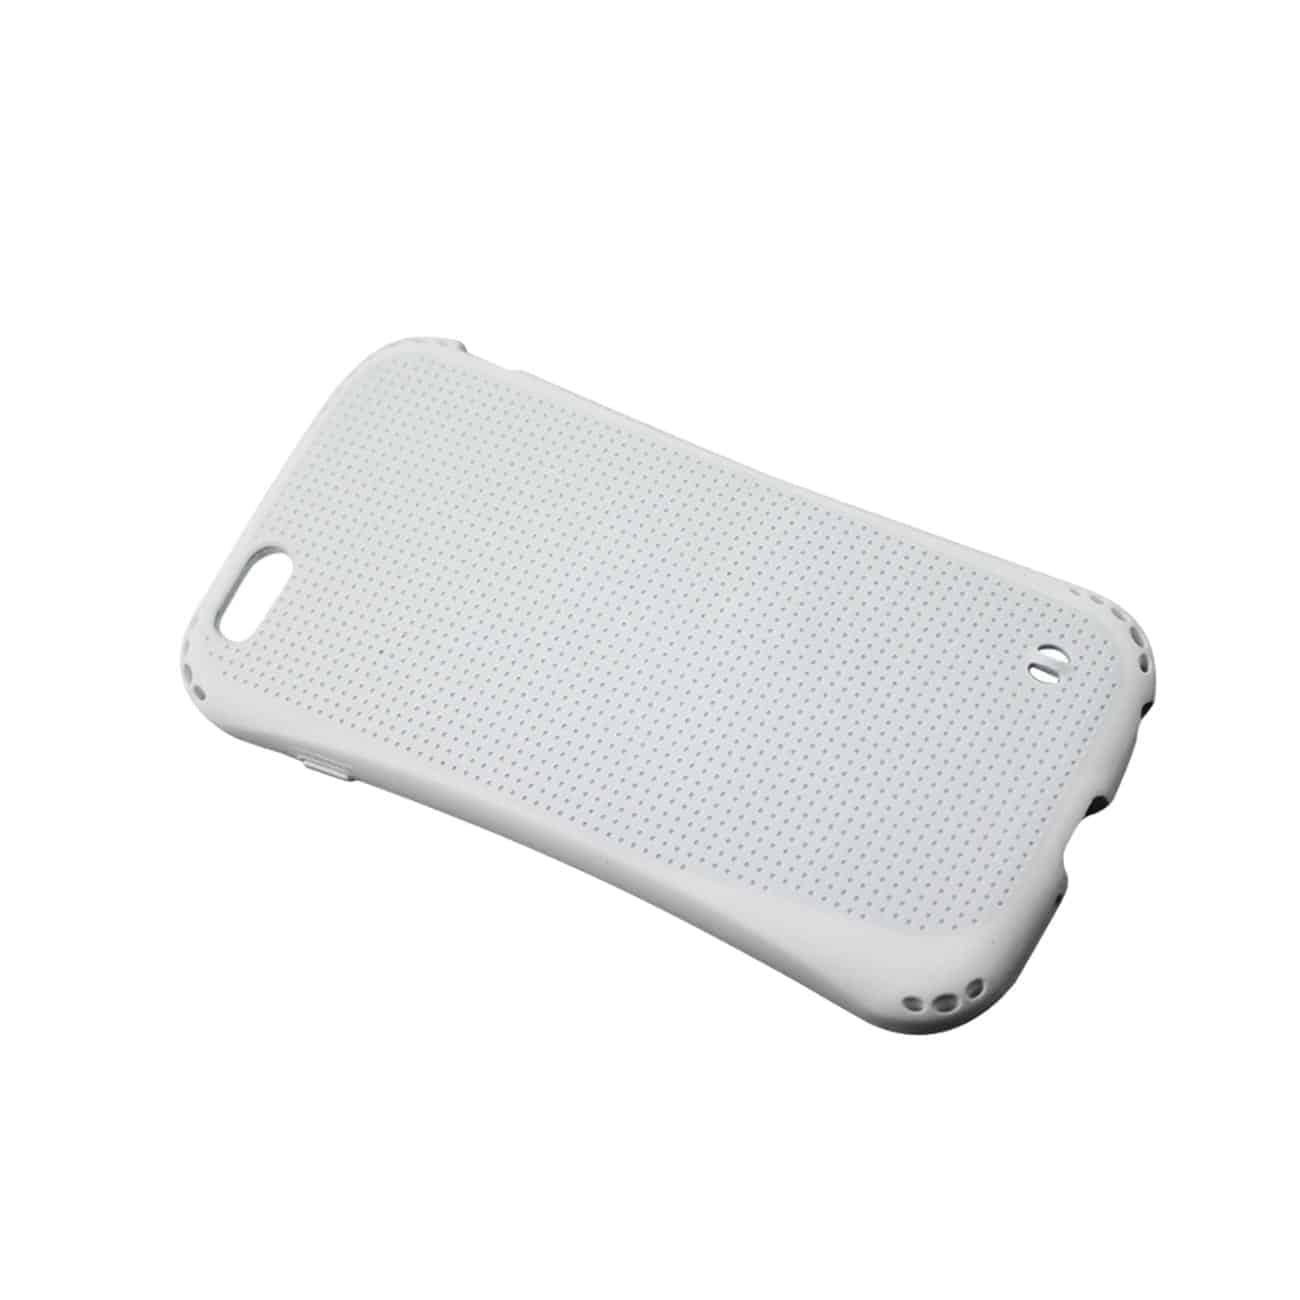 IPHONE 6 PLUS DROPPROOF AIR CUSHION CASE WITH CHAIN HOLE IN WHITE